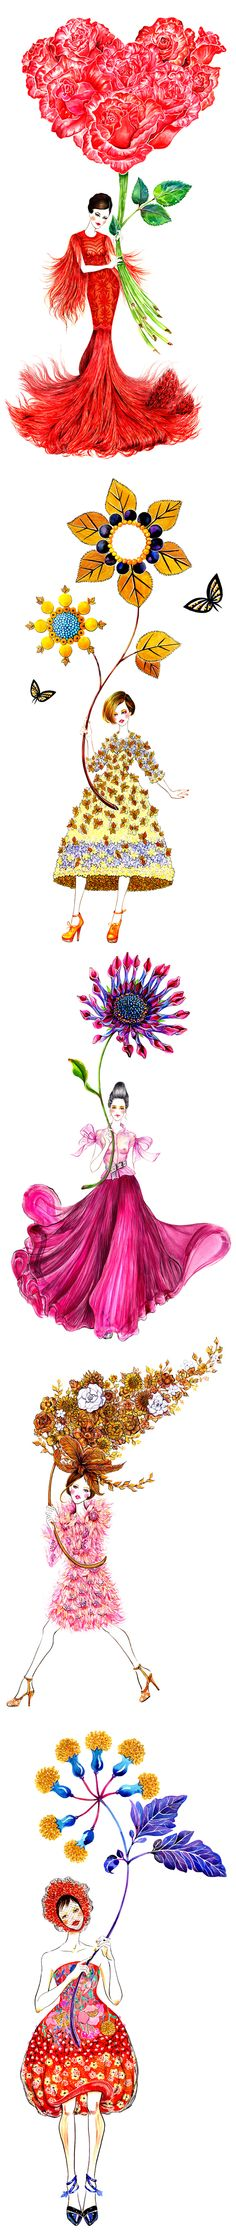 Flower Mood | Fashion Illustration Series by Sunny Gu #fashion #illustration #fashionillustration